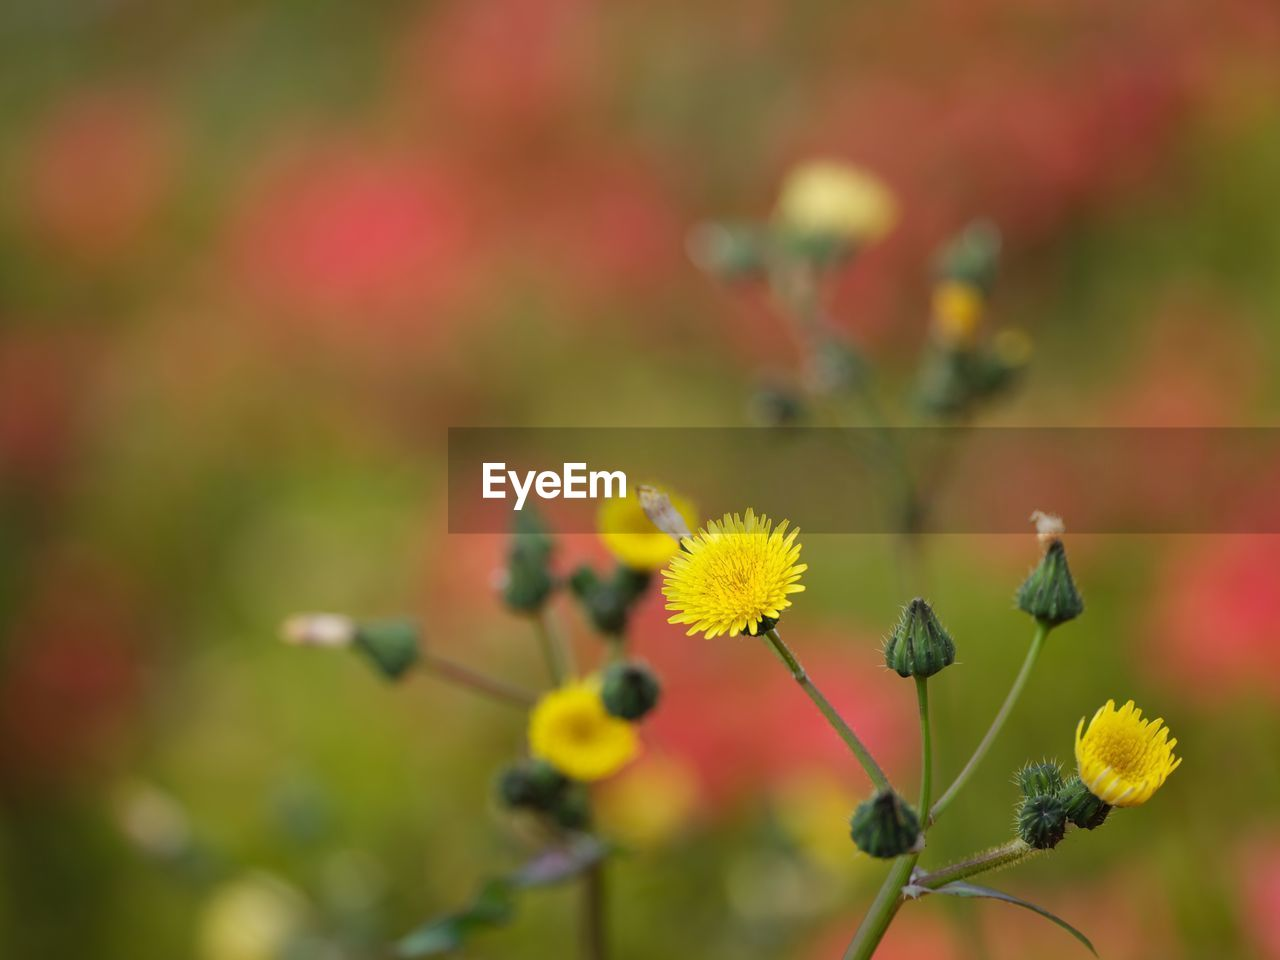 flower, flowering plant, growth, fragility, vulnerability, plant, freshness, beauty in nature, yellow, close-up, no people, flower head, selective focus, nature, petal, inflorescence, plant stem, focus on foreground, day, outdoors, pollination